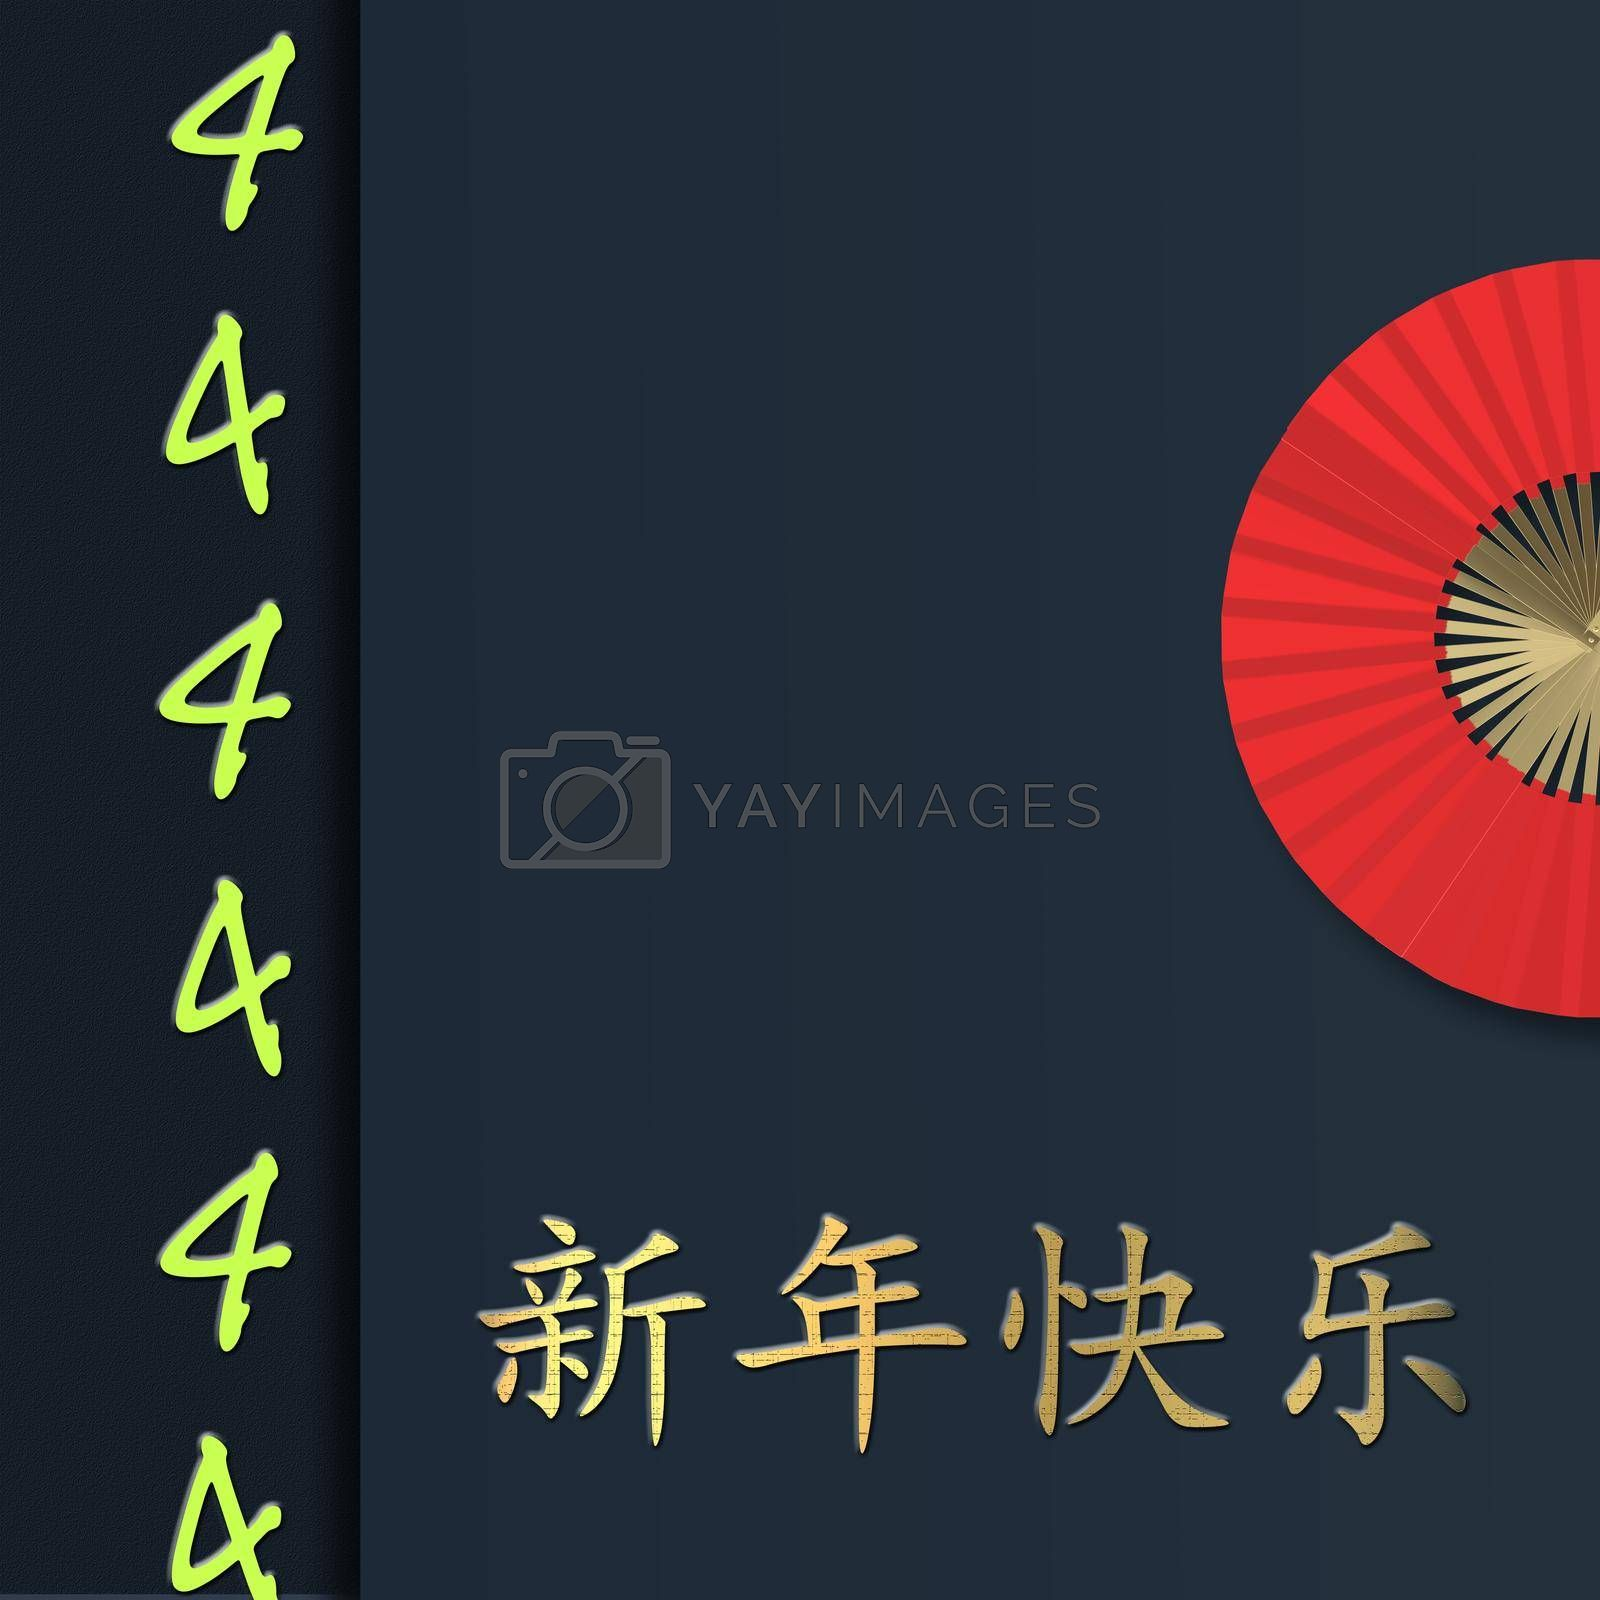 Happy Chinese New Year minimalist card. Lucky number 4 in green colour, fan. Gold text Happy Chinese new year. Design for oriental greetings, invitation, posters, brochure, calendar, flyers. 3D render